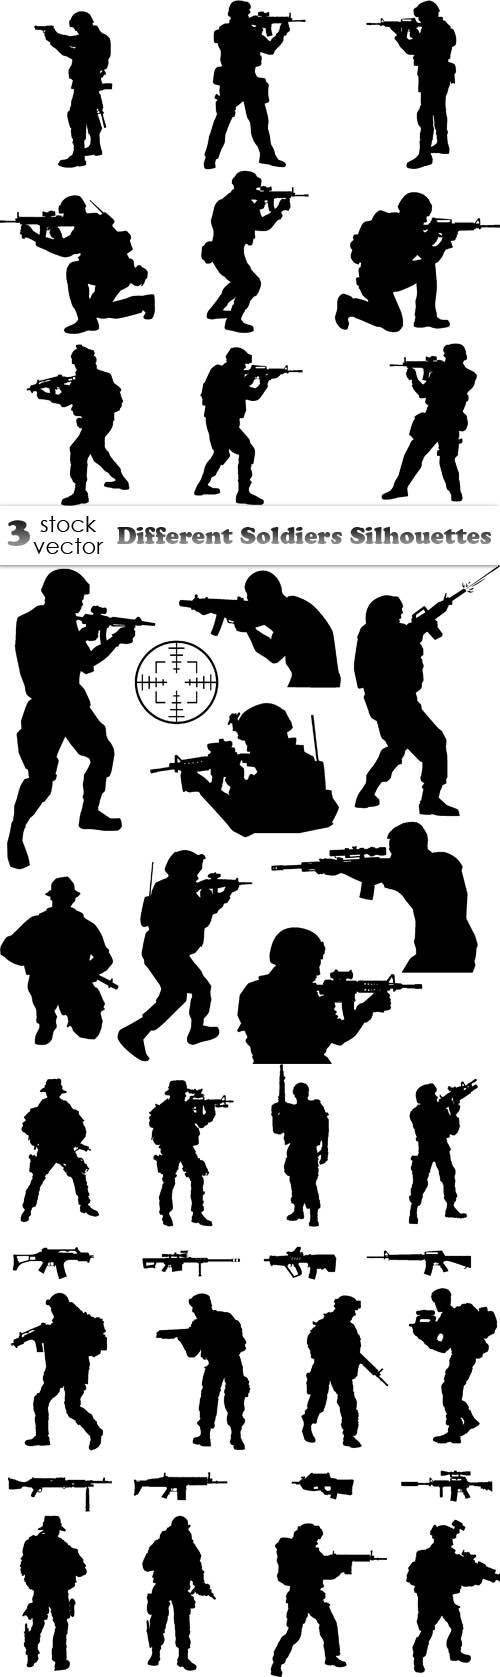 The 25+ best Soldier silhouette ideas on Pinterest | Ypres ww1, Soldier tattoo and Illustrator cs